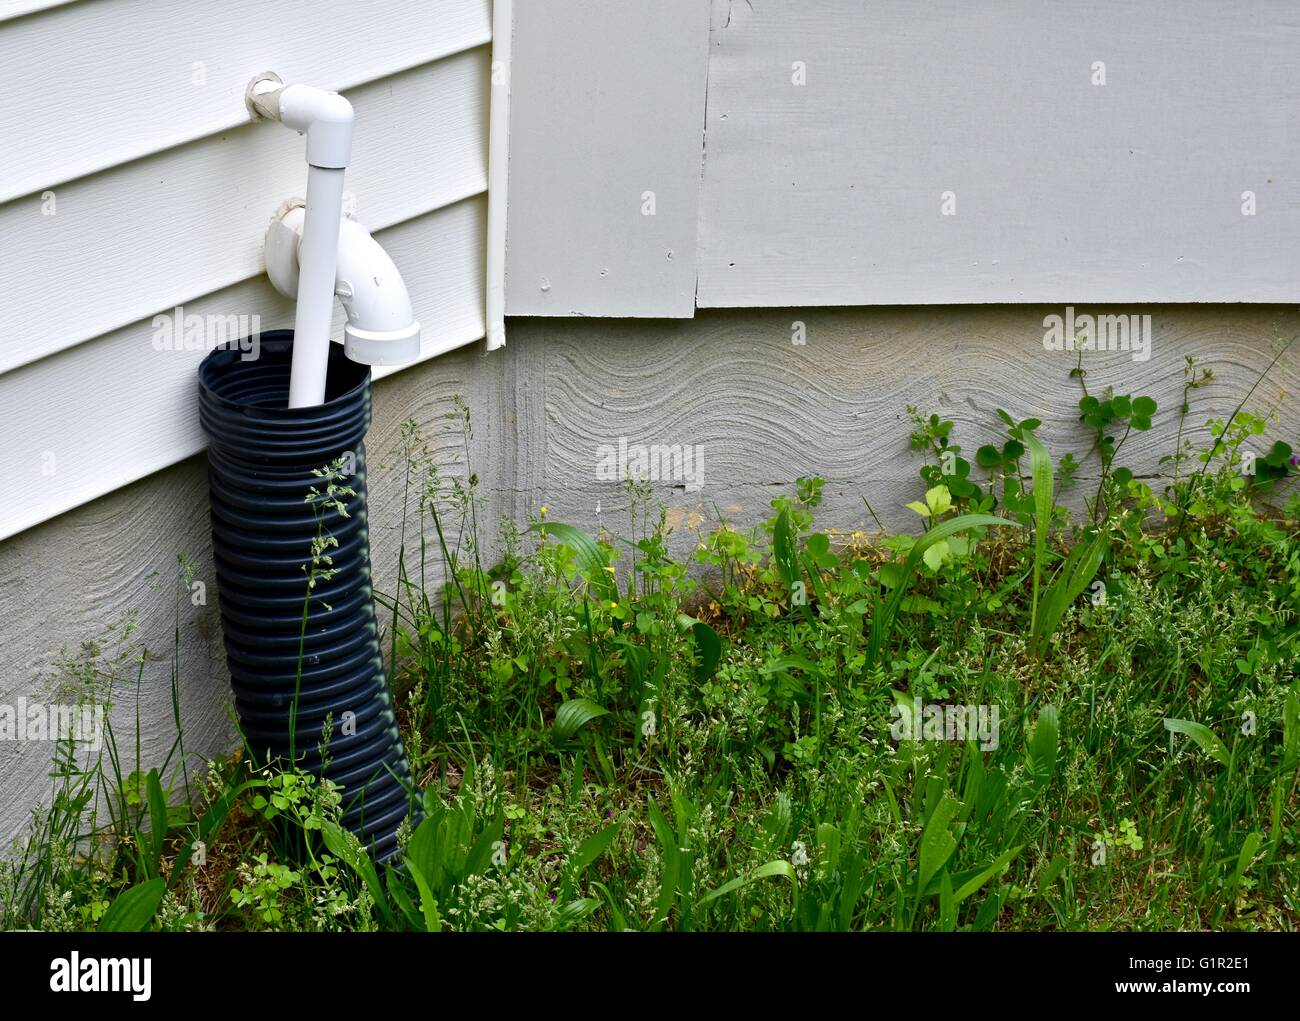 A residential home with a drain pipe on the exterior stock for Water pipe outside house